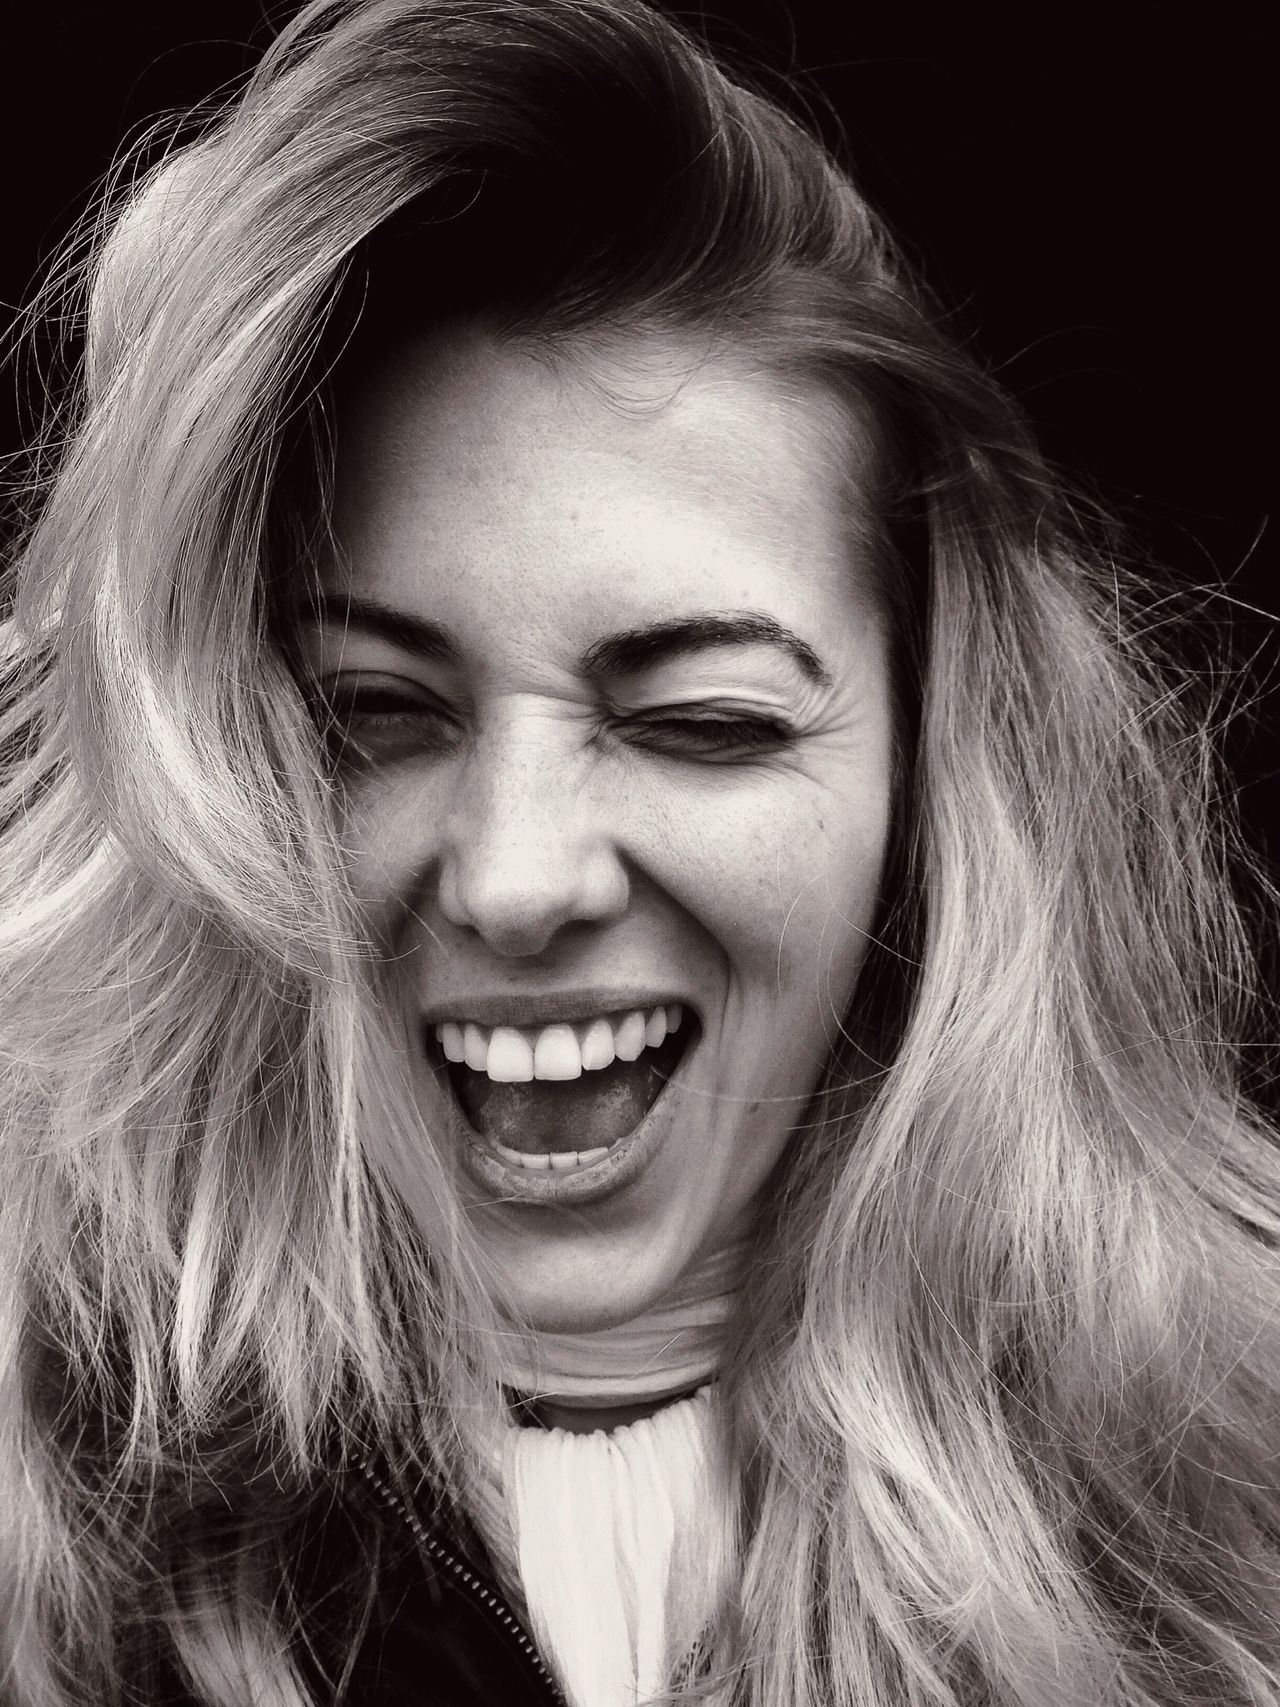 Beautiful stock photos of face, Black Background, Blonde Hair, Cheerful, Happiness